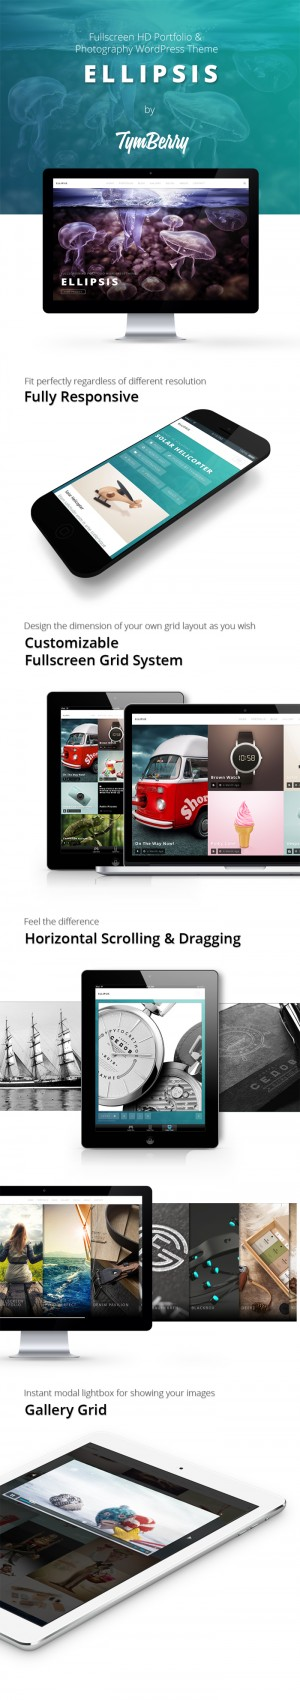 Ellipsis – Fullscreen HD Portfolio & Photography WordPress Theme  Ellipsis is a fullsc ...